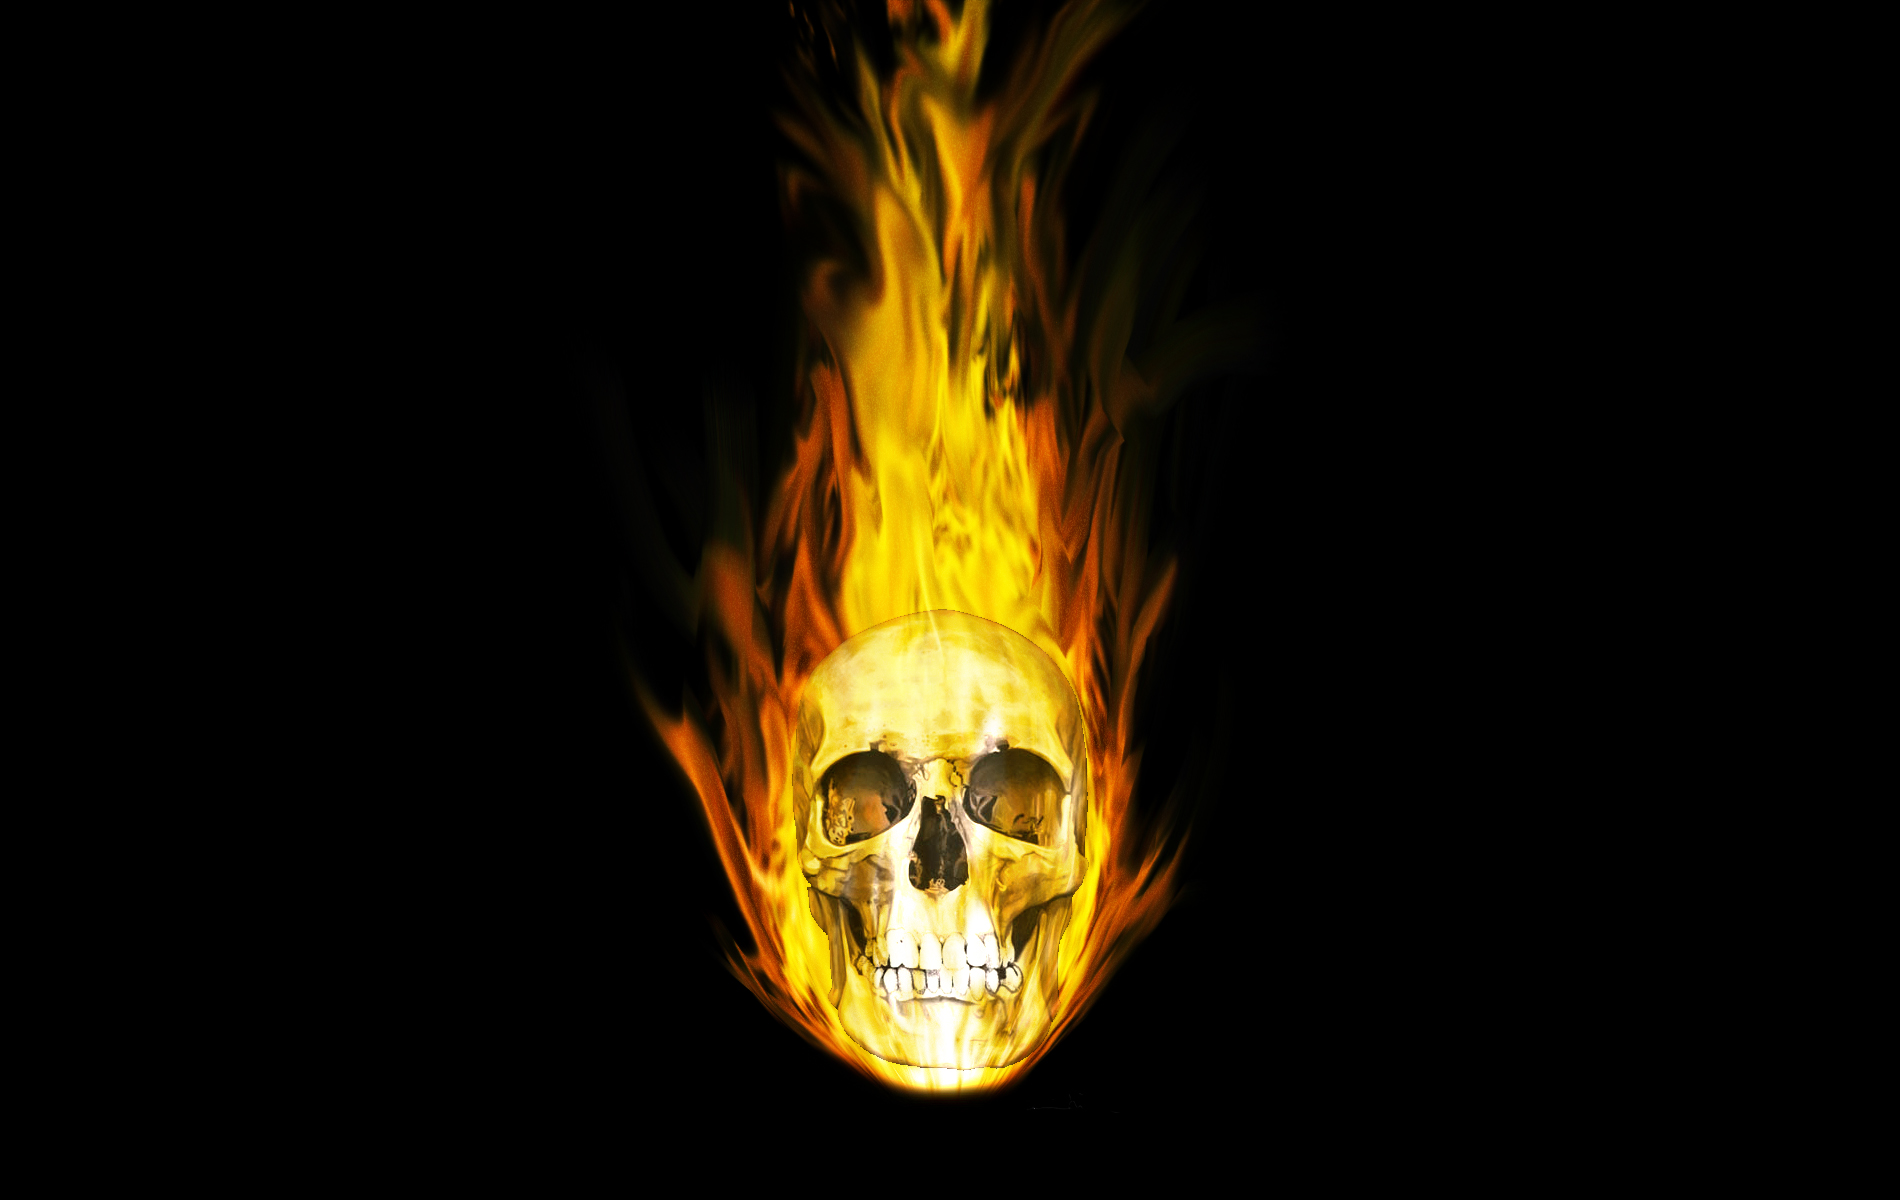 Ghost Rider Skull Wallpaper